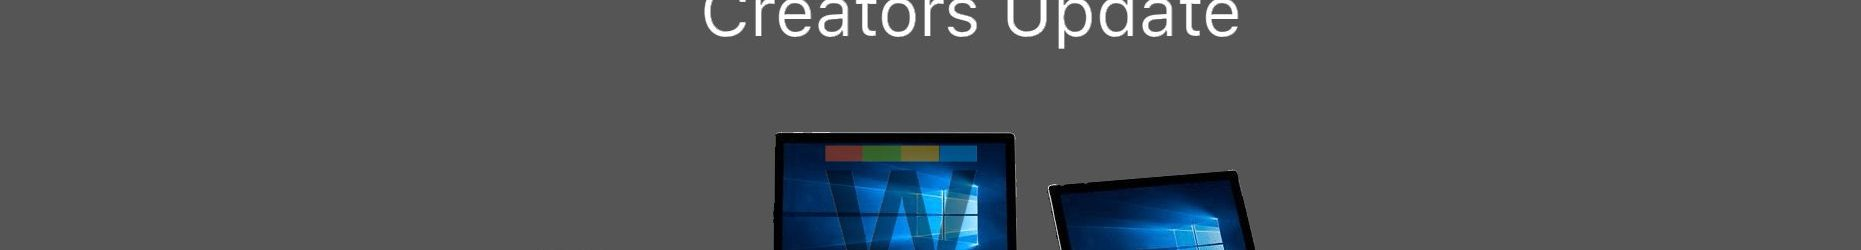 Windows 10 Creators Update già disponibile al download